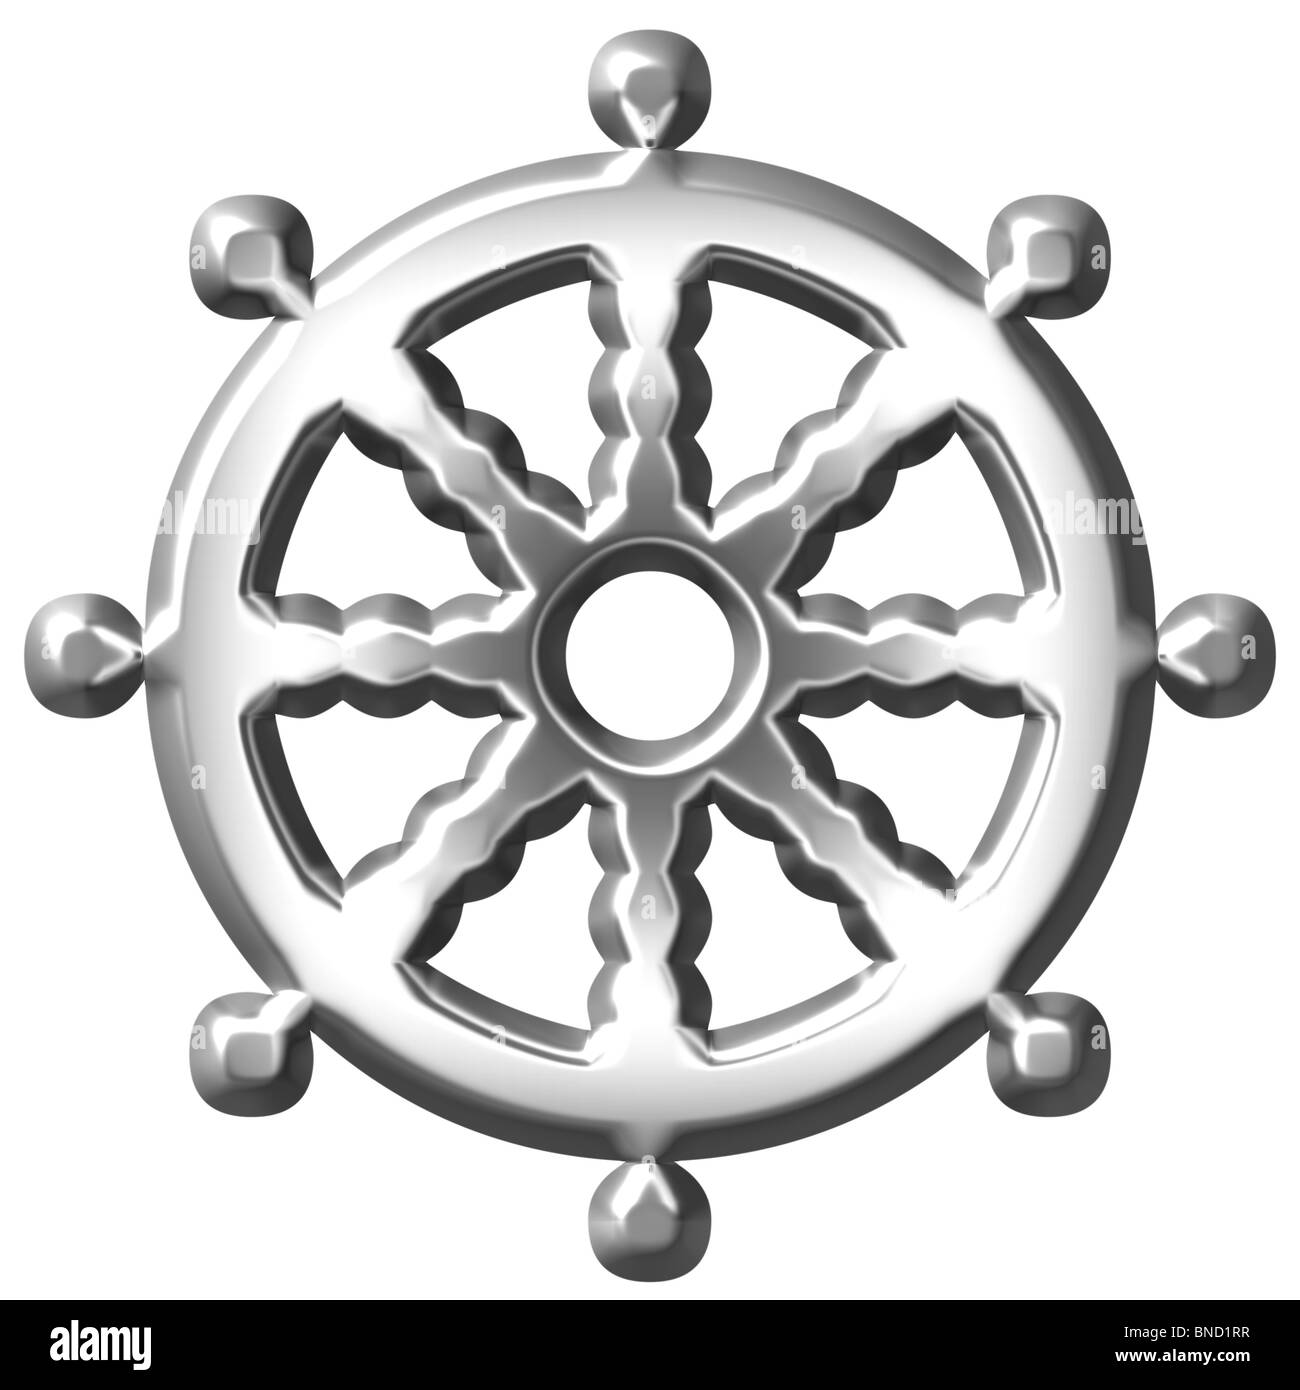 3d silver Buddhism symbol Wheel of Dharma - Stock Image